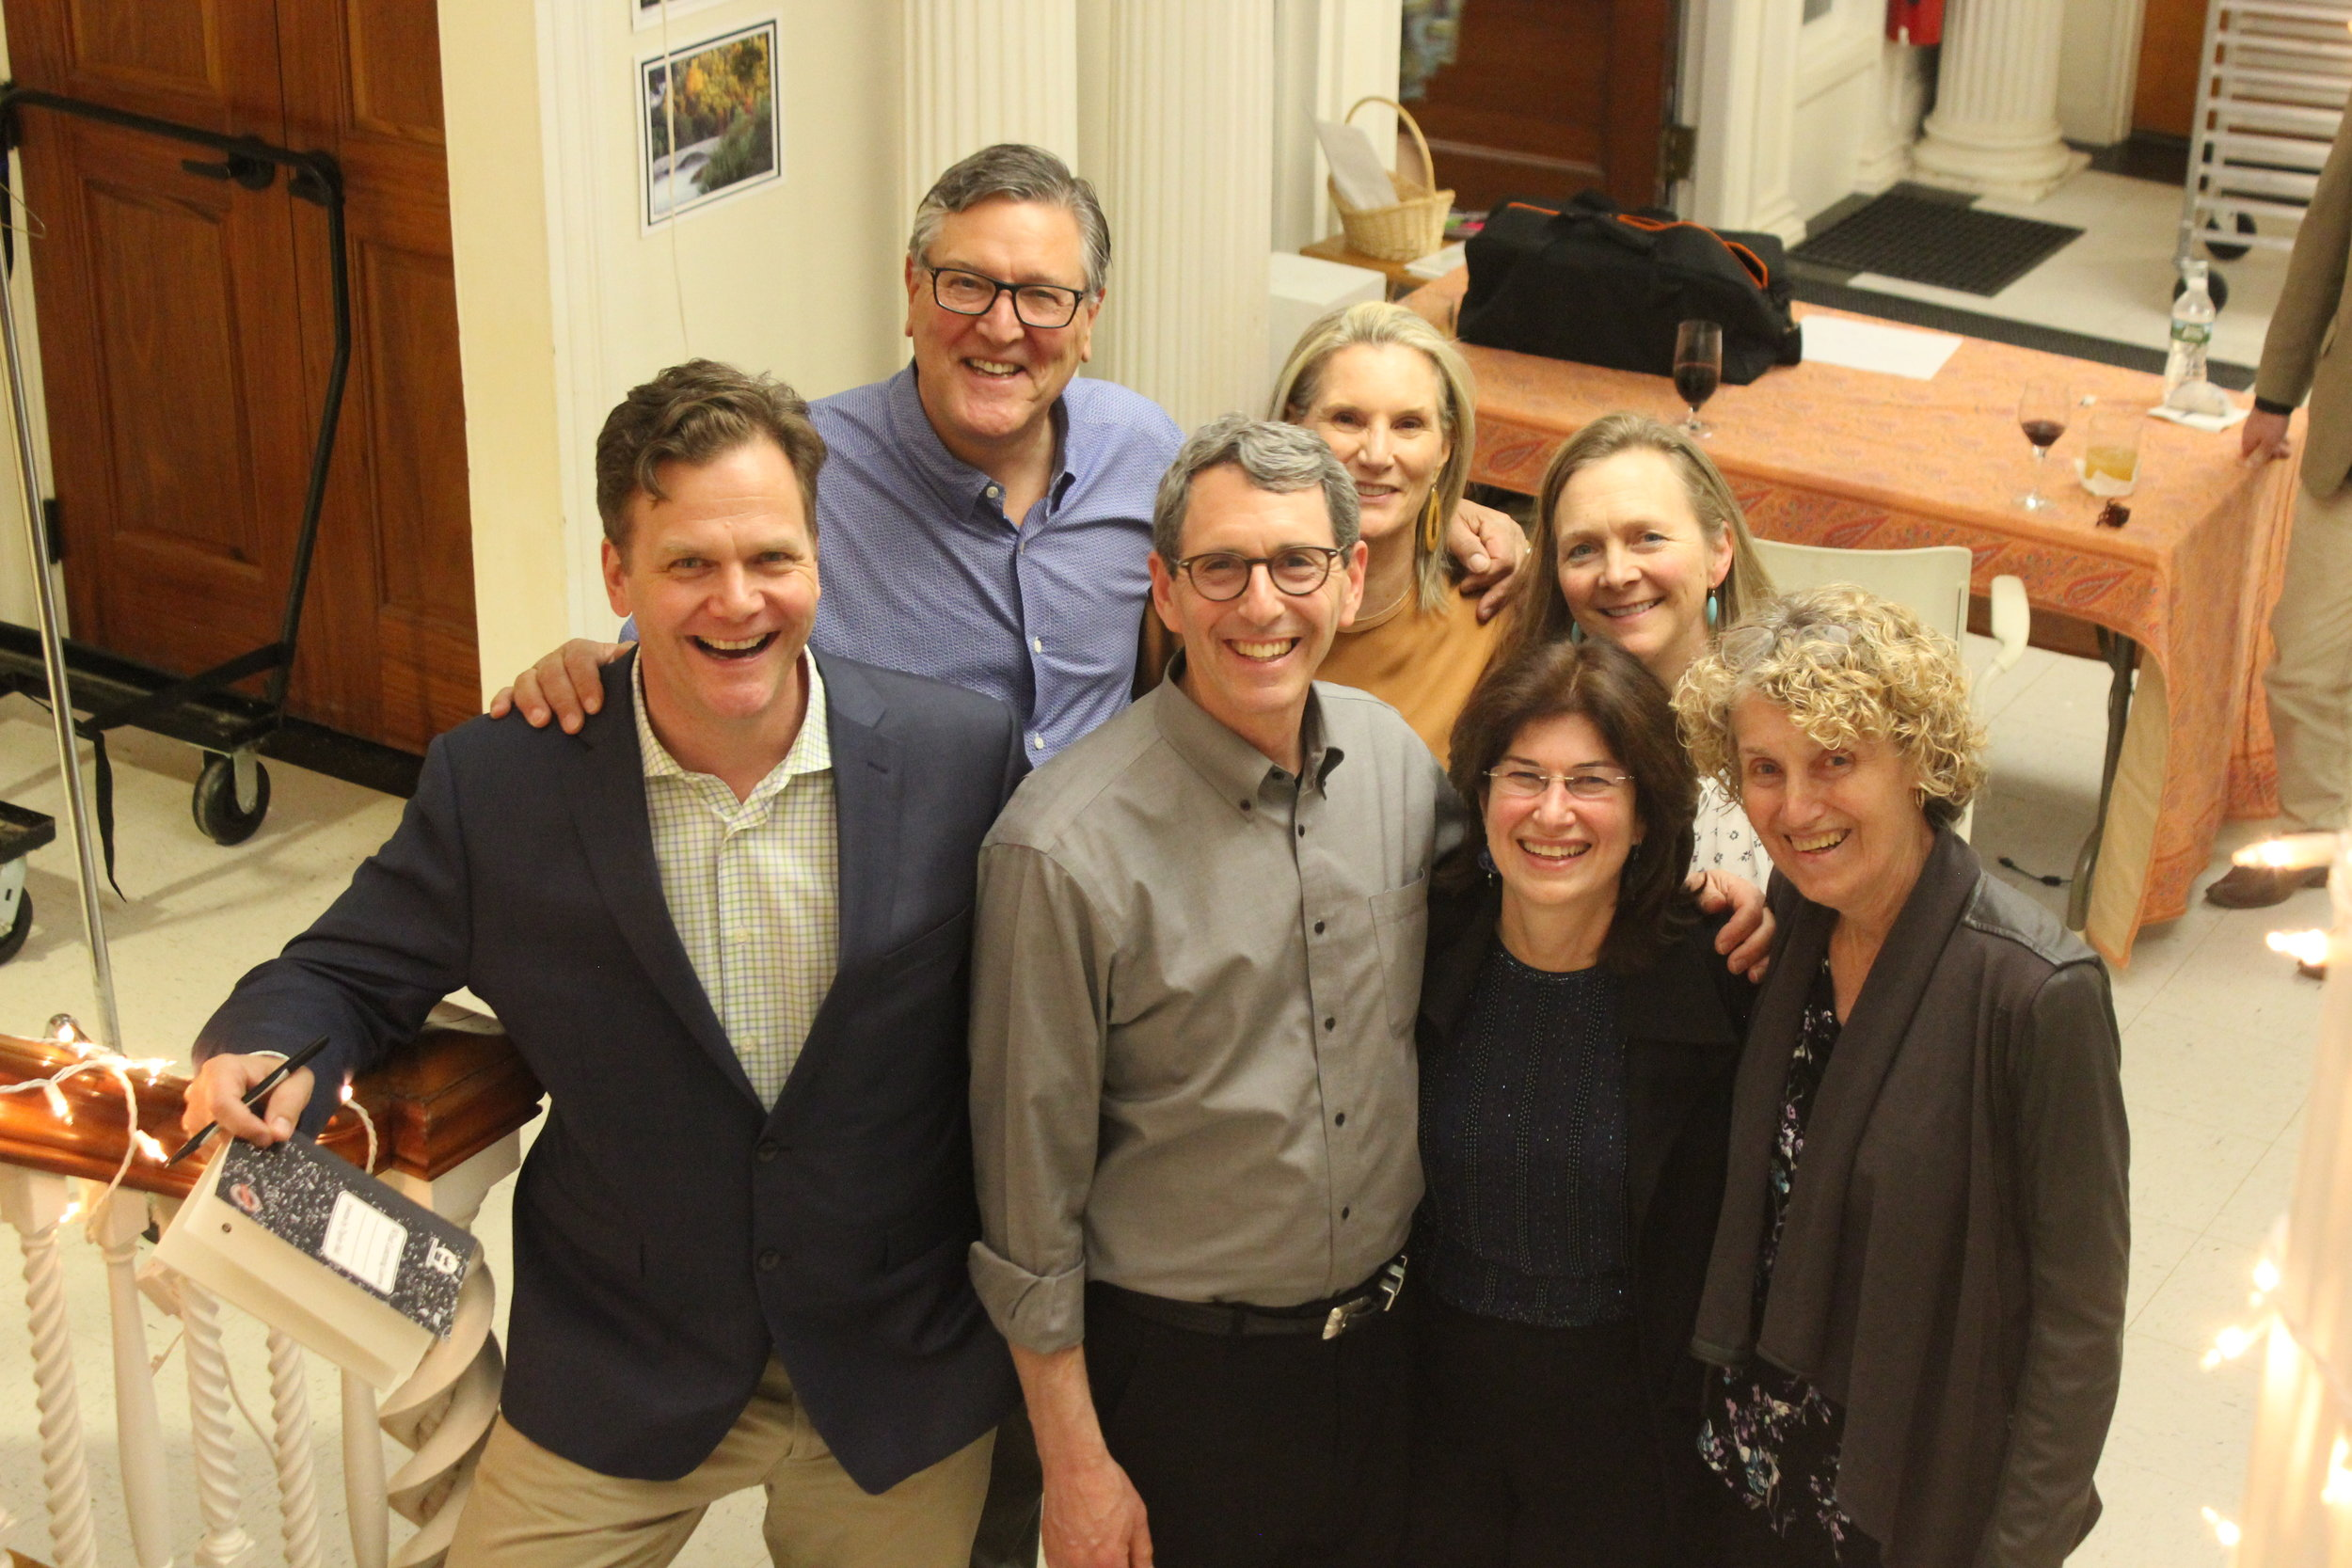 L to R- Taylor Mali and Board Members- Cliff and Carey Cort- Andrew Singer, Heidi Webb, Kate Pingeon and Nancy Klavans